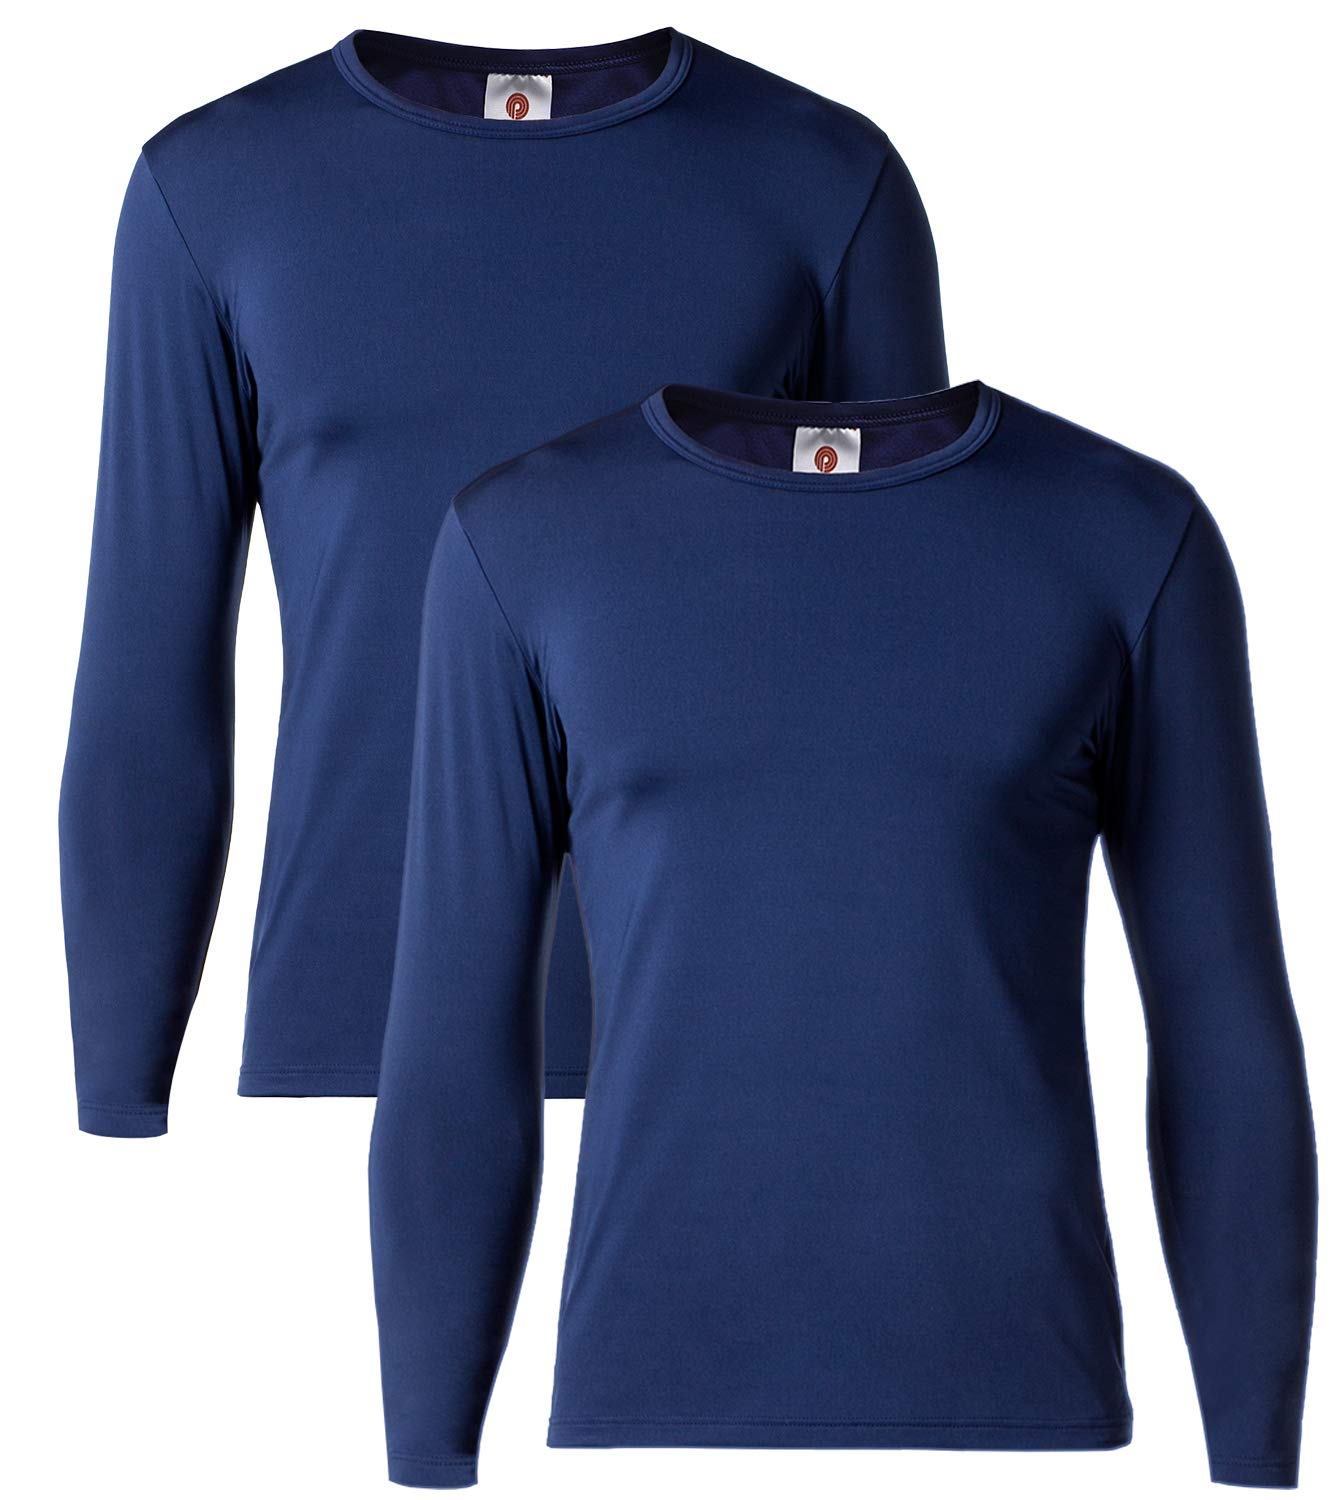 LAPASA Men's Lightweight Thermal Underwear Tops Fleece Lined Base Layer Long Sleeve Shirts 2 Pack M09 (X-Large, Navy) by LAPASA